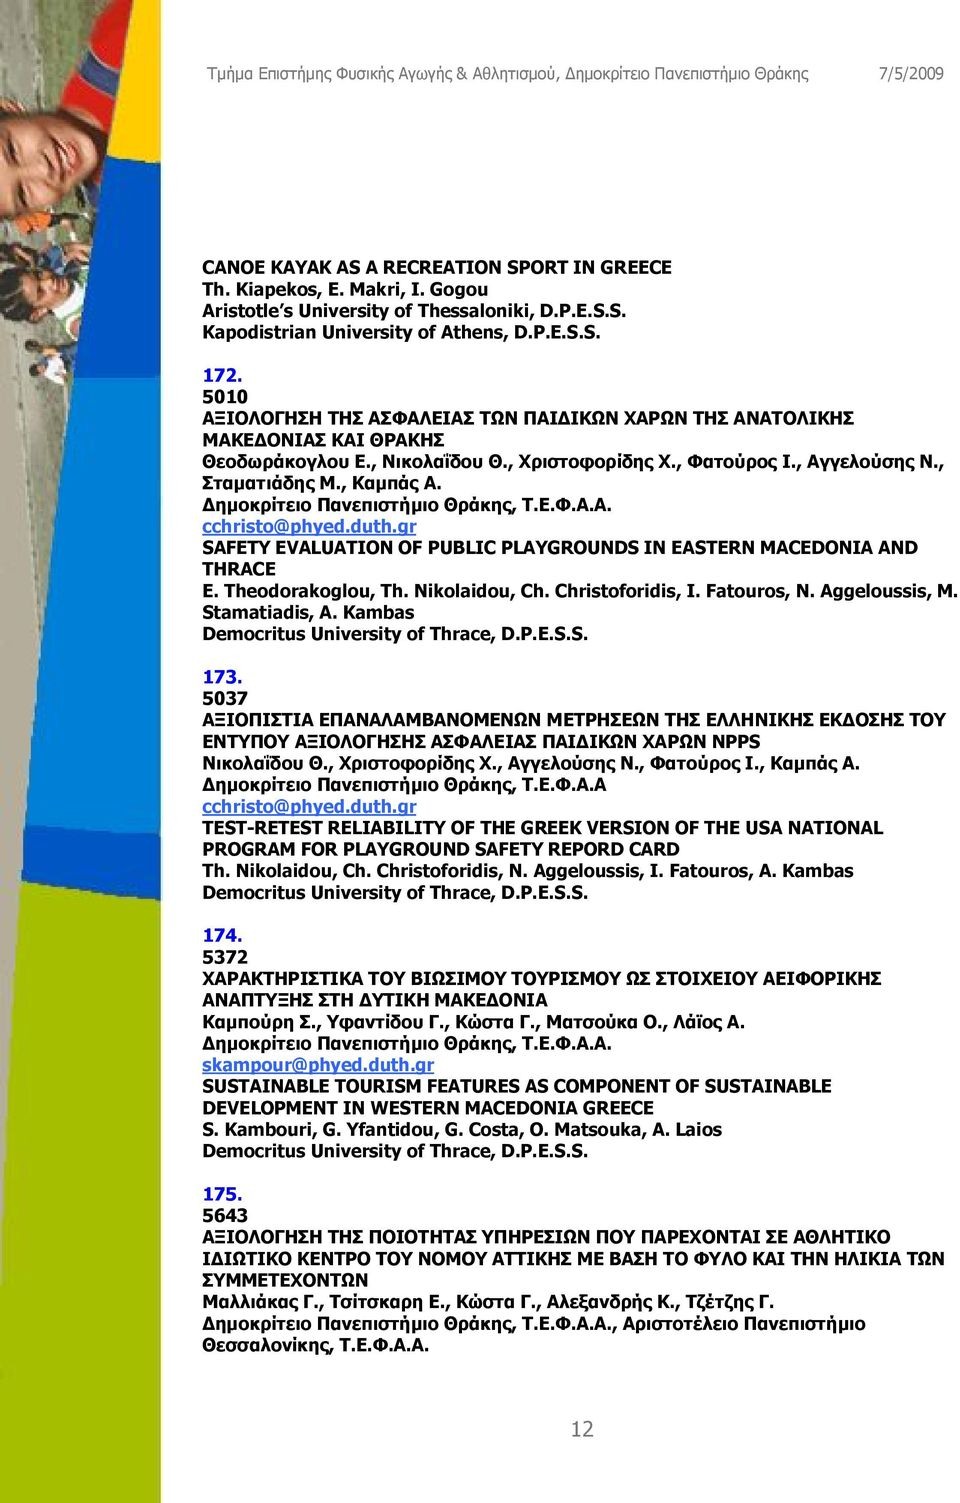 cchristo@phyed.duth.gr SAFETY EVALUATION OF PUBLIC PLAYGROUNDS IN EASTERN MACEDONIA AND THRACE E. Theodorakoglou, Th. Nikolaidou, Ch. Christoforidis, I. Fatouros, N. Aggeloussis, M. Stamatiadis, A.